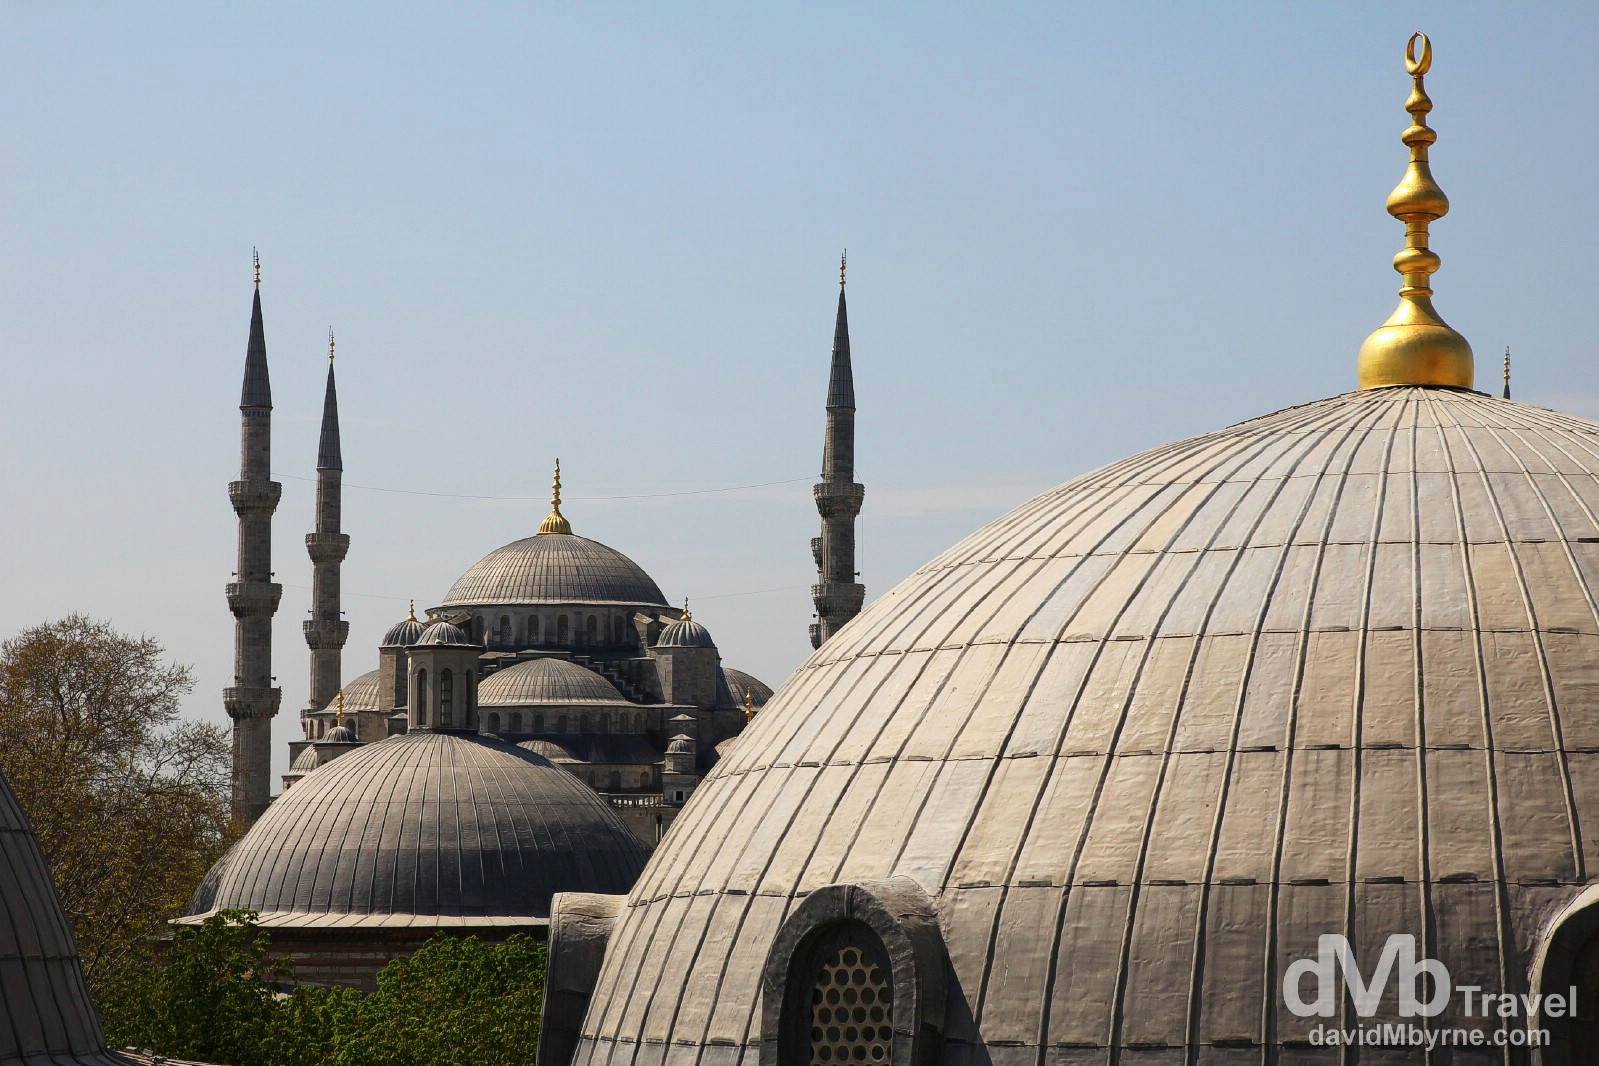 The Sultan Ahmed Mosque, aka The Blue Mosque, as seen from the upper windows of the Aya Sofya. Istanbul, Turkey. April 10th, 2014.